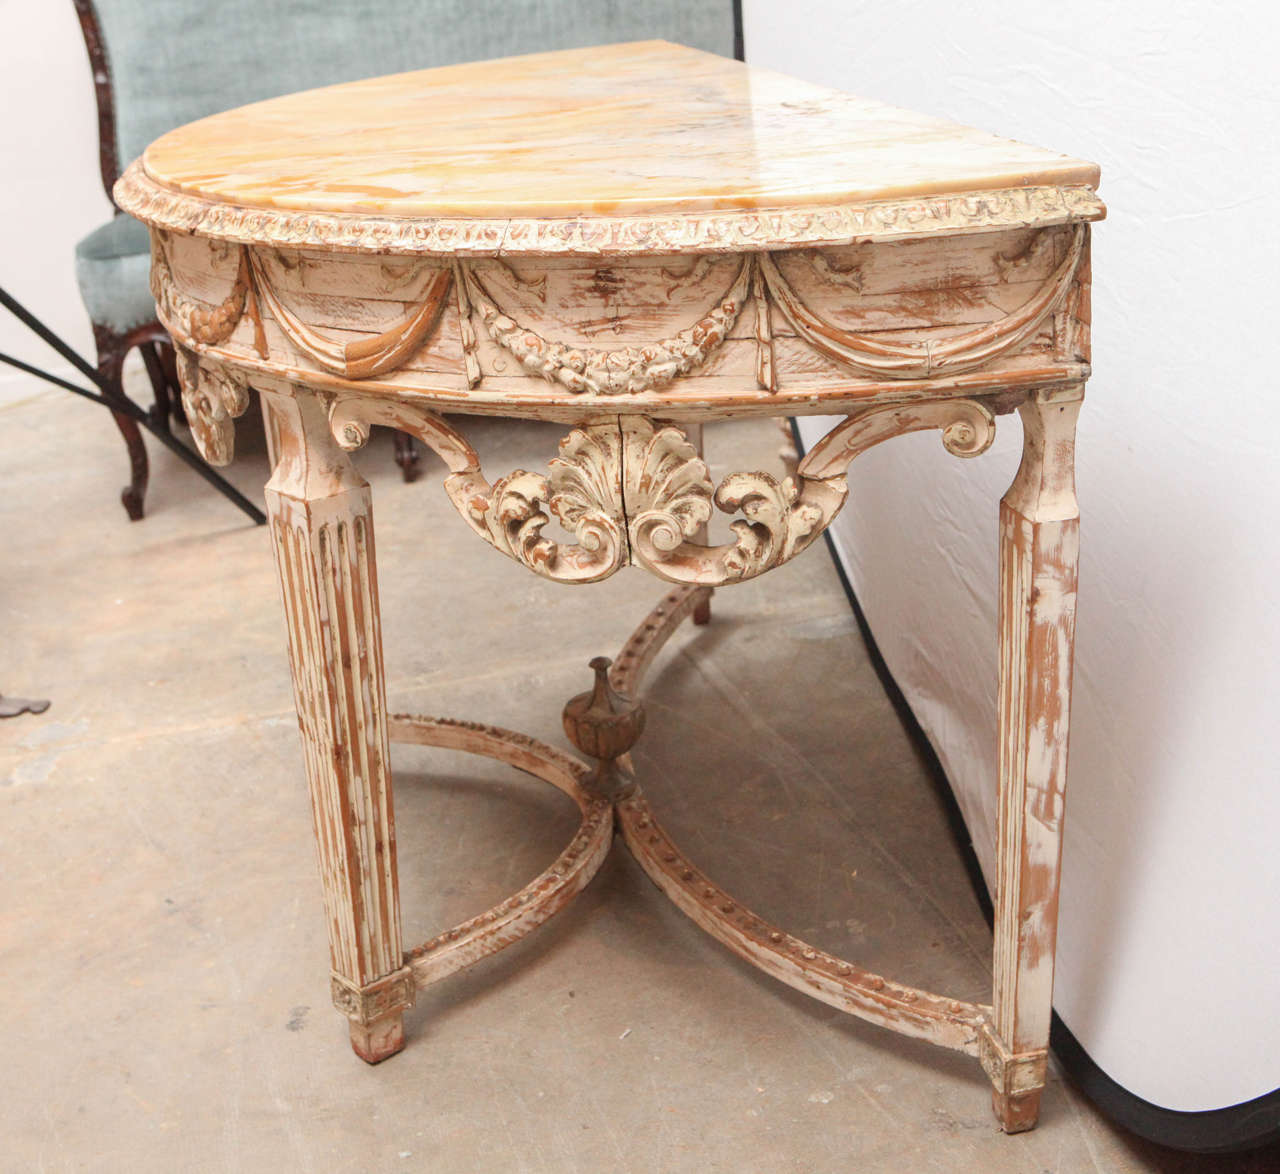 19th Century Italian Carved Demilune Console Table with Stretcher For Sale 5